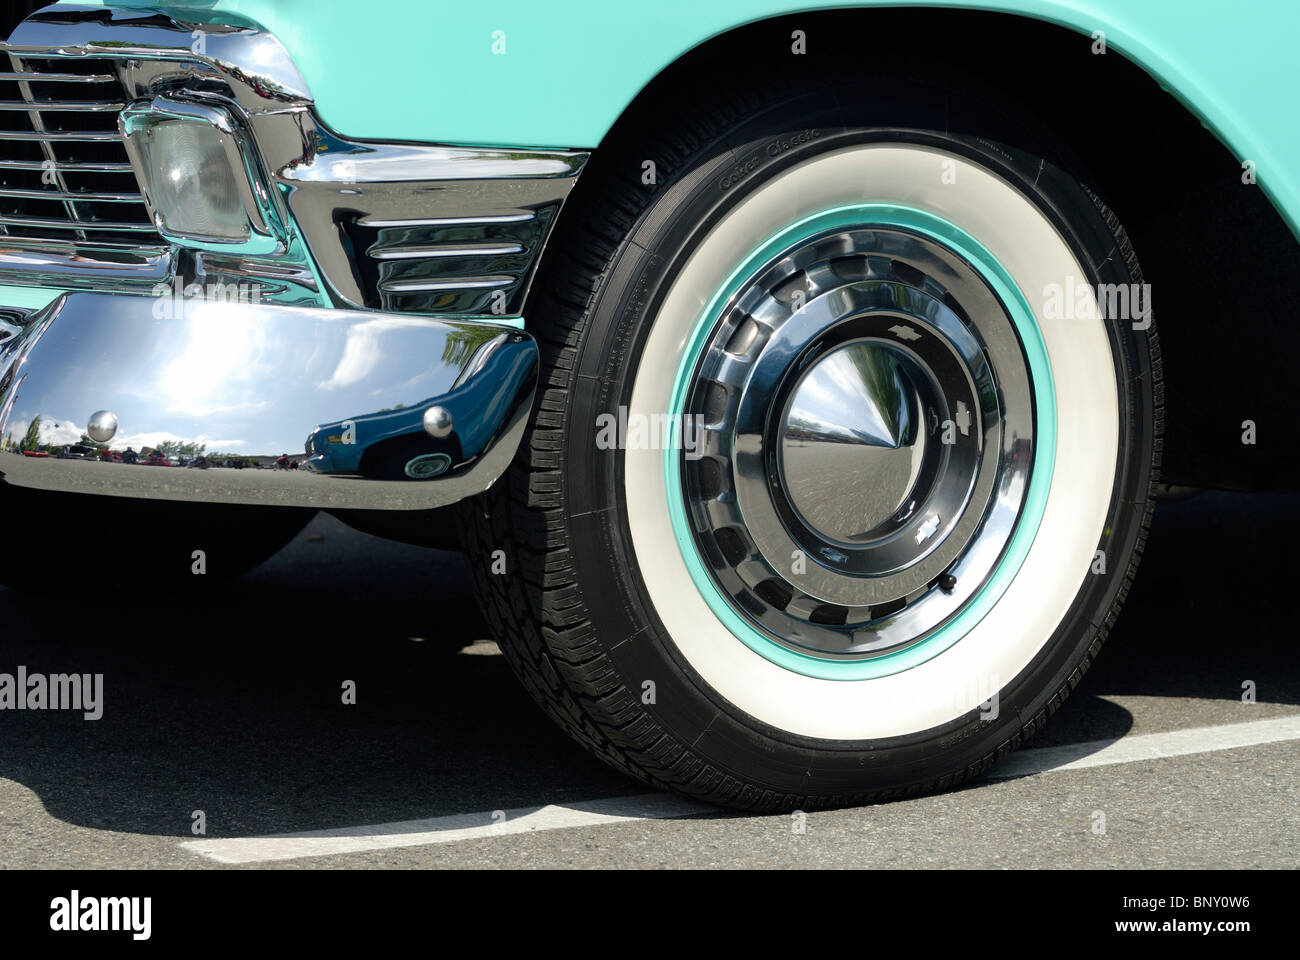 Side view of a classic 1959 Ford Sunliner Convertible automobile, showing part of its bumper and whitewall tire. - Stock Image